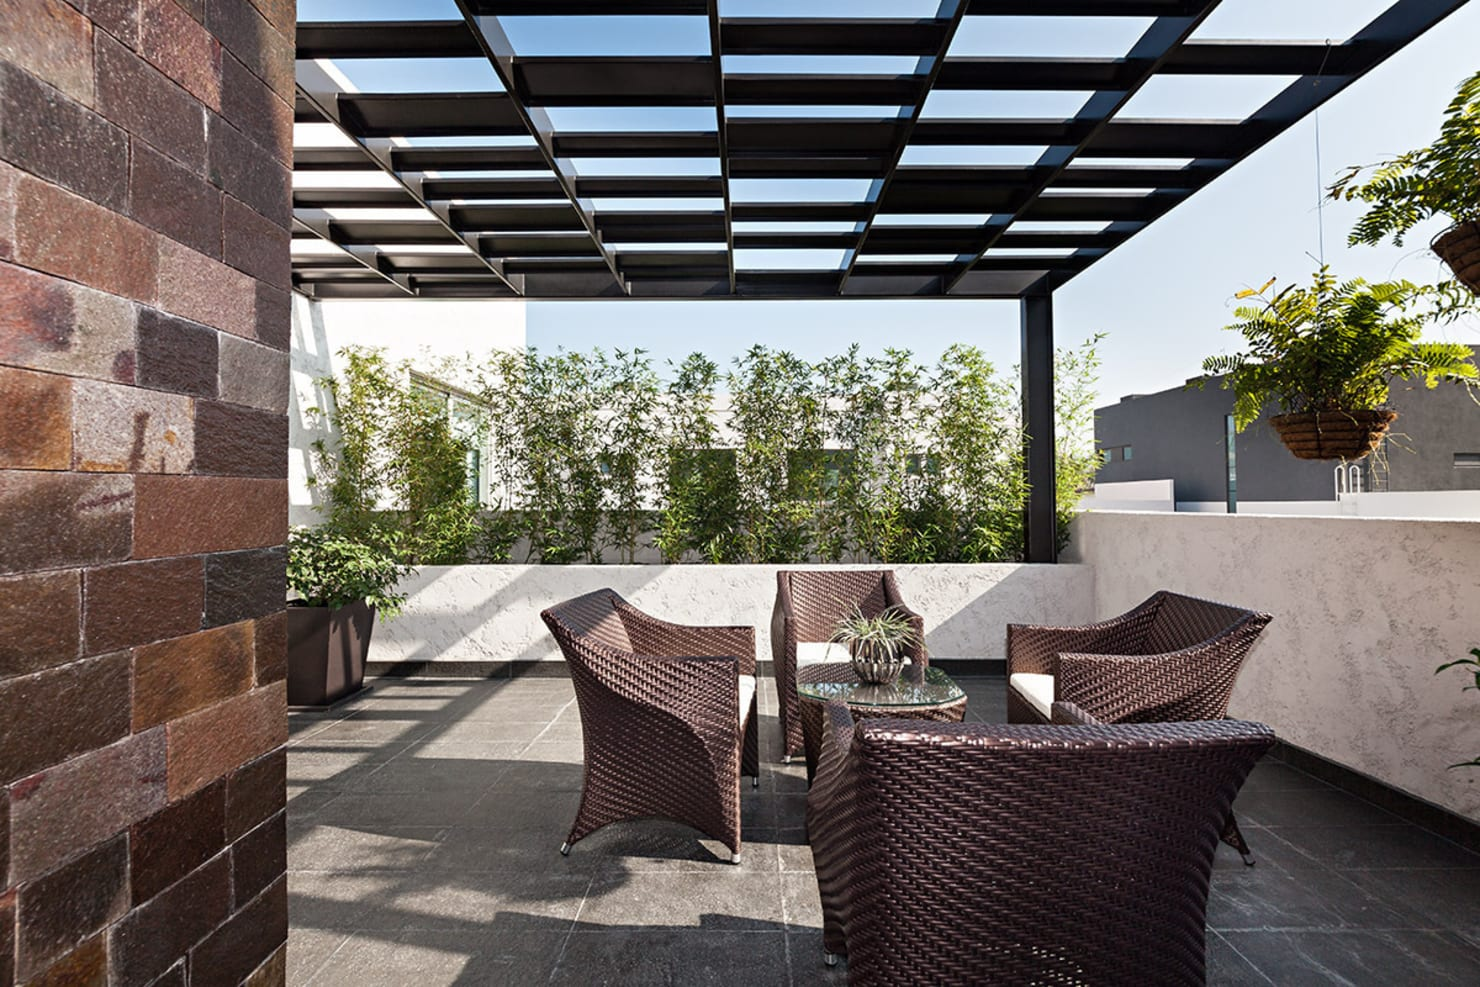 7 easy ways to build the perfect patio